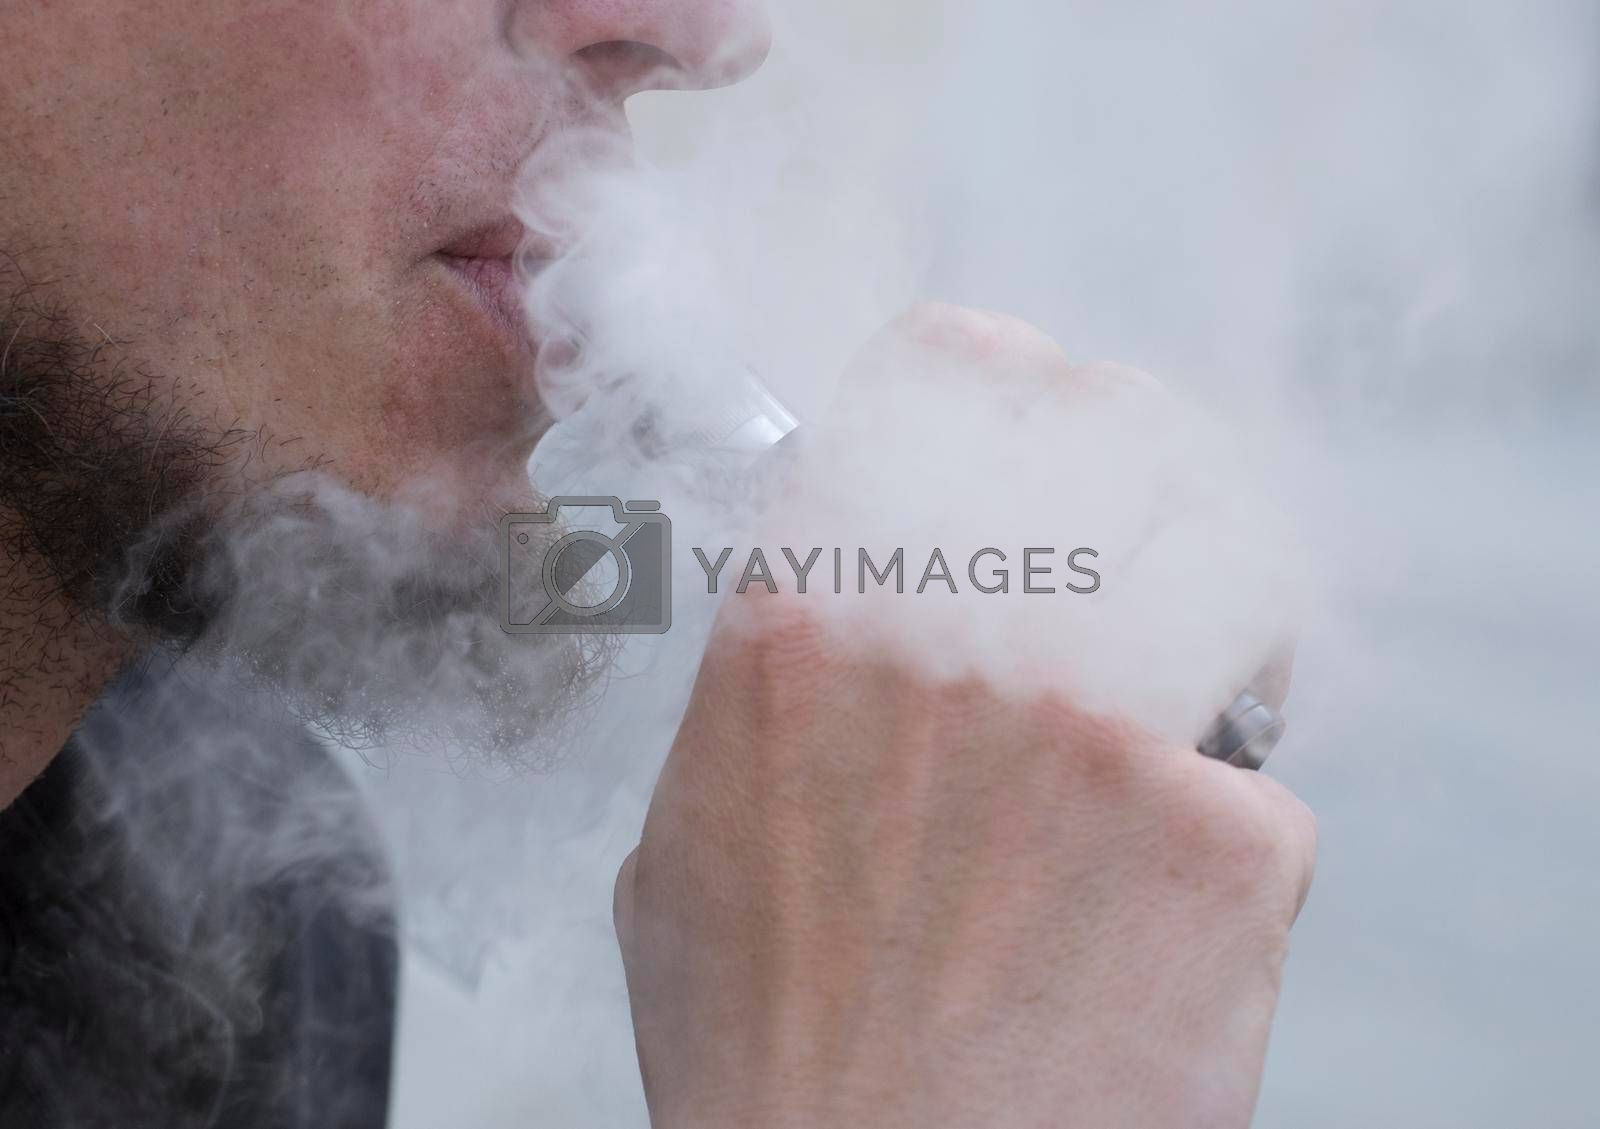 smoking an e-cigarette or electronic cigarette, nicotine consumption and vaping